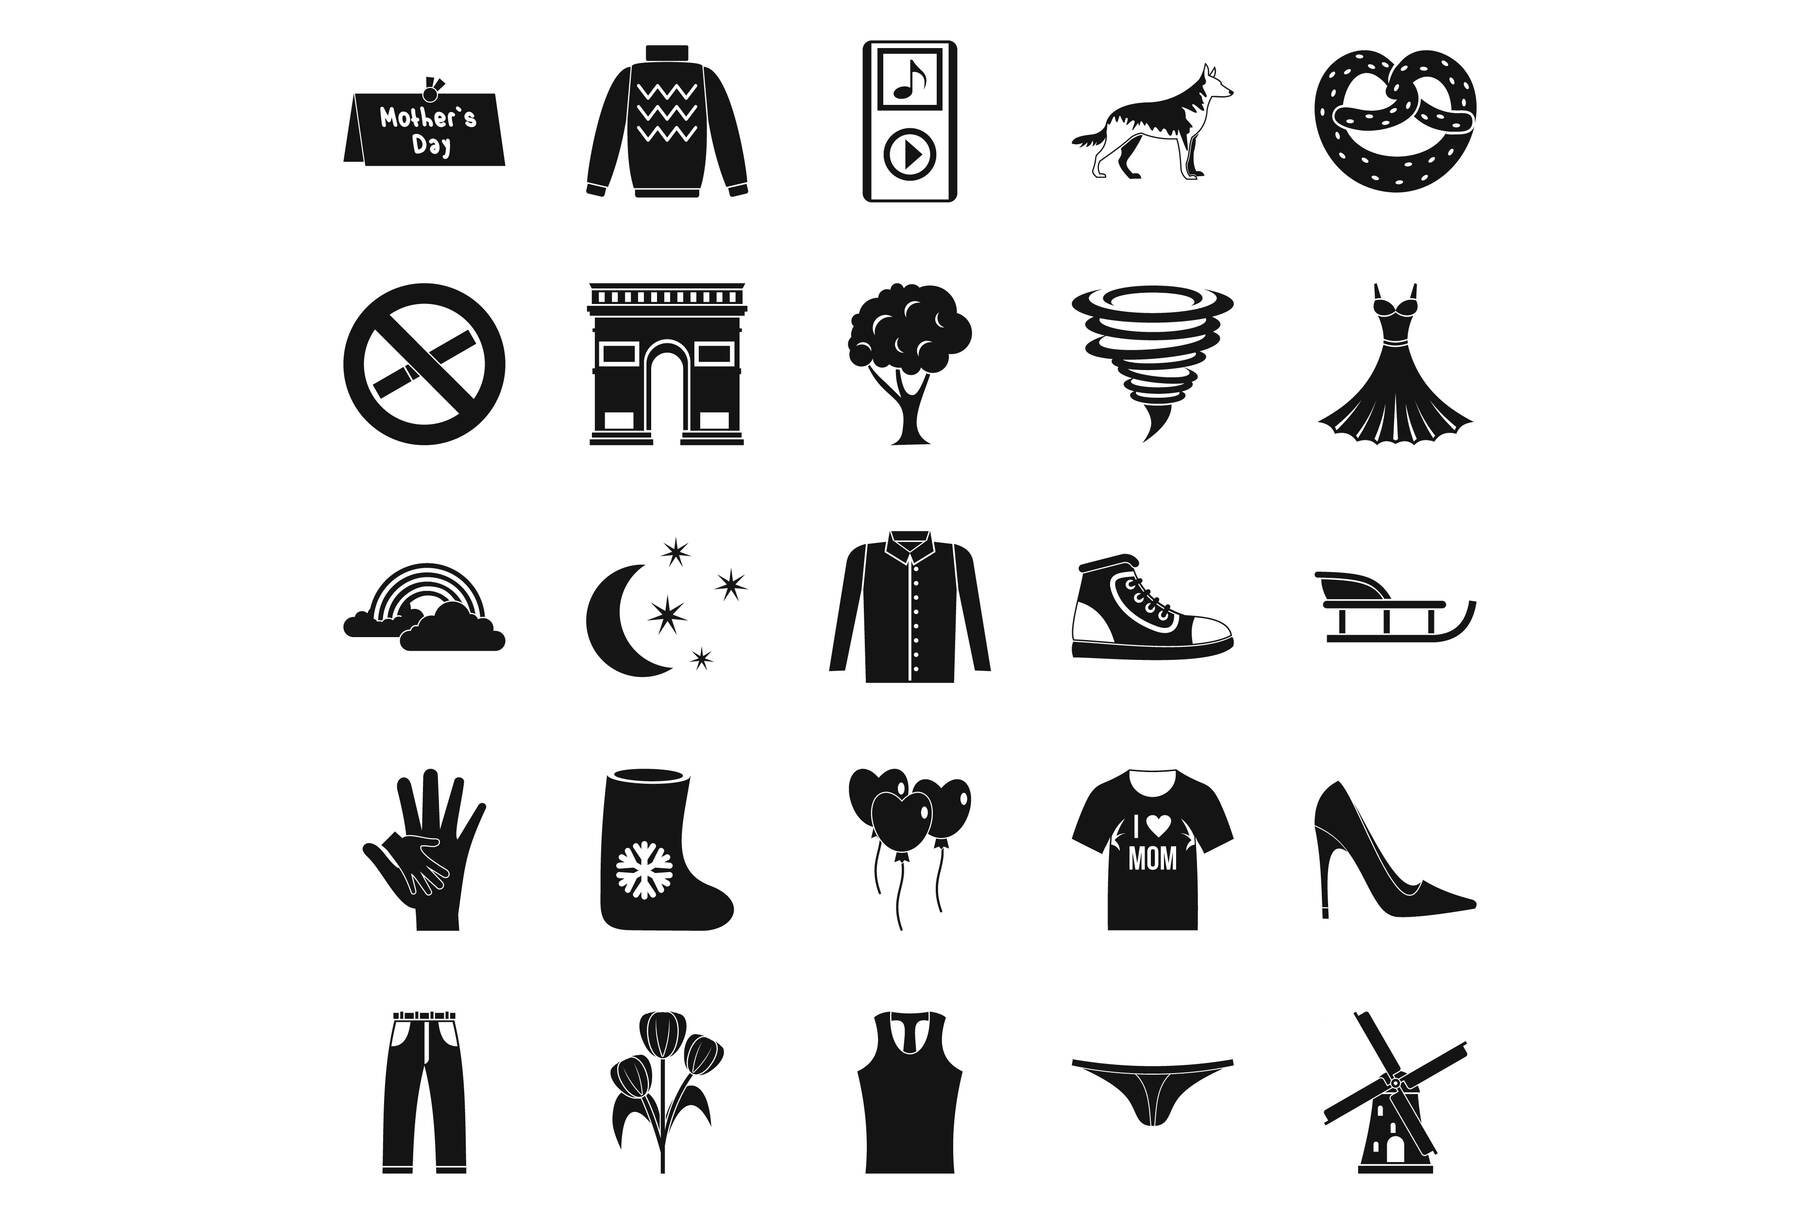 Walking clothes icons set, simple style example image 1